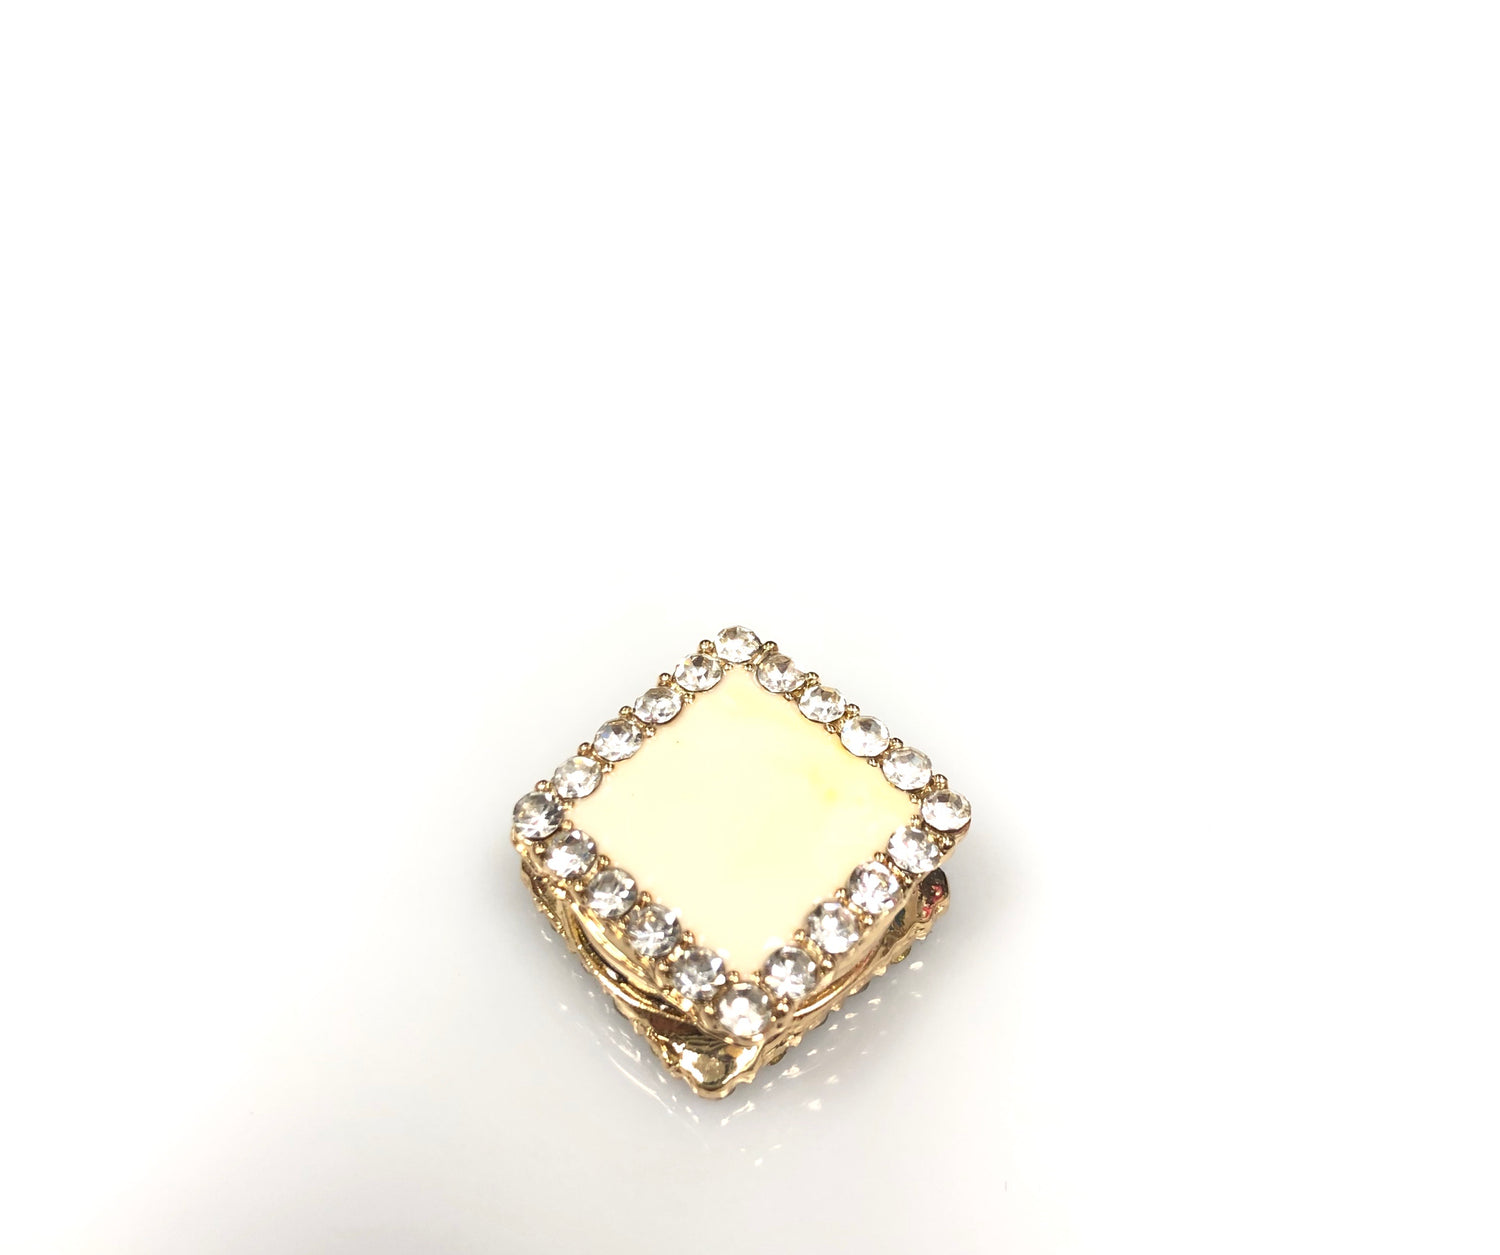 Square Shaped Magnetic Pin - Cream